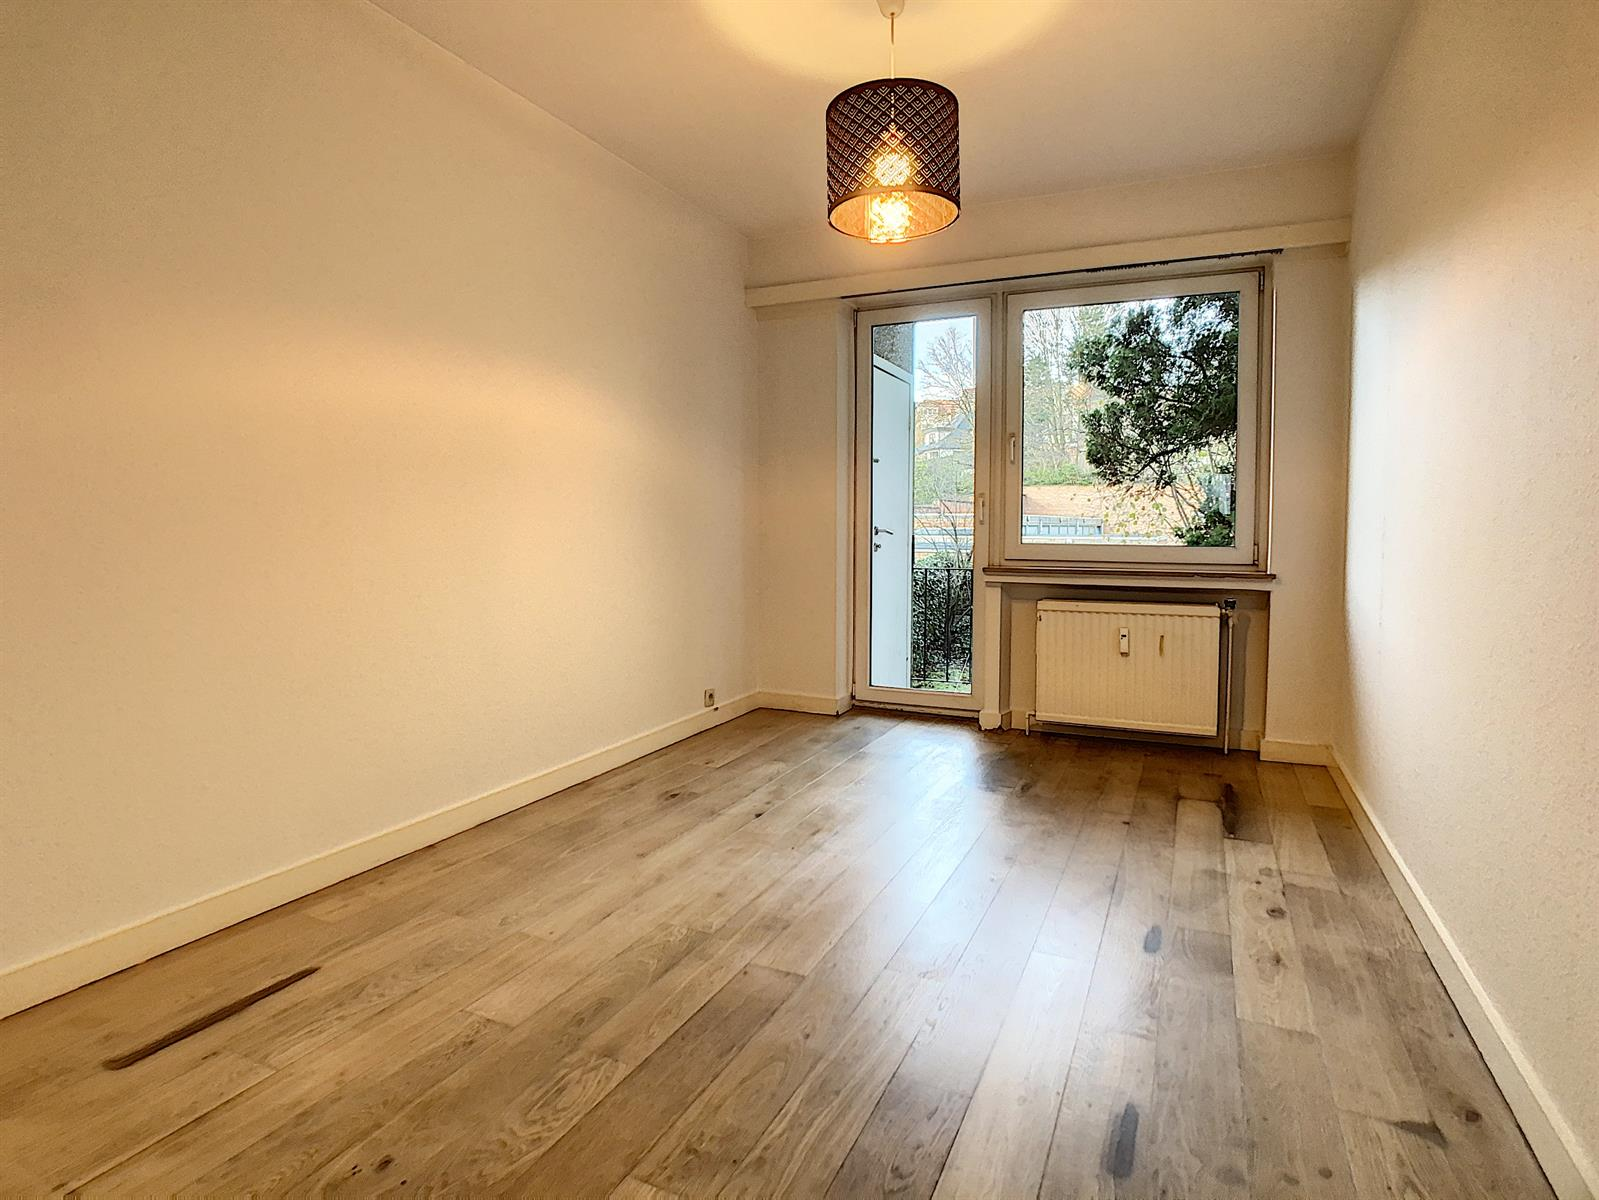 Appartement - Uccle - #4239849-5